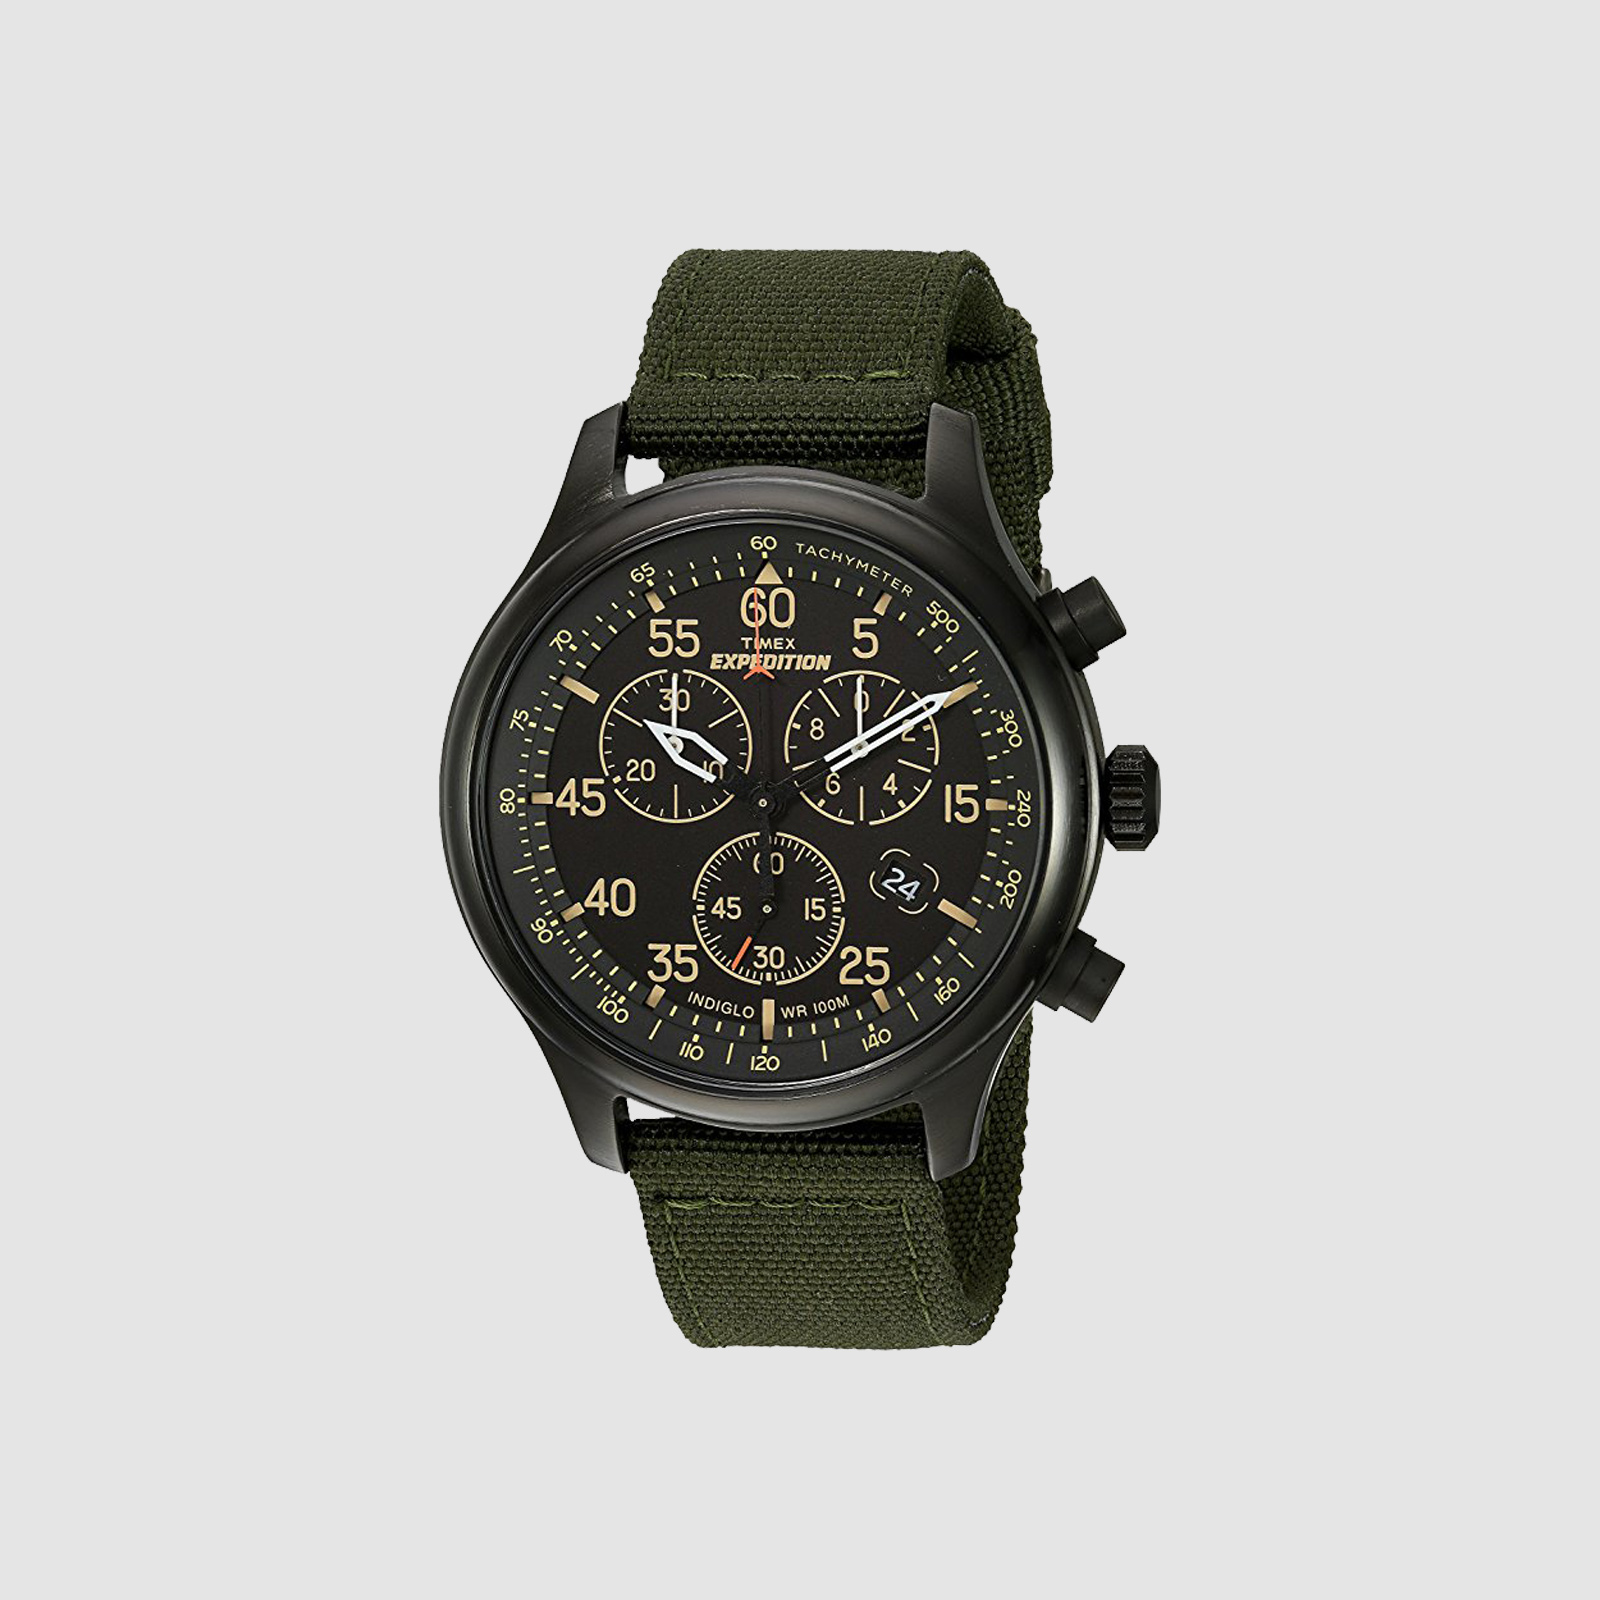 Timex Expedition Field Chronograph | $45-$53 | Amazon